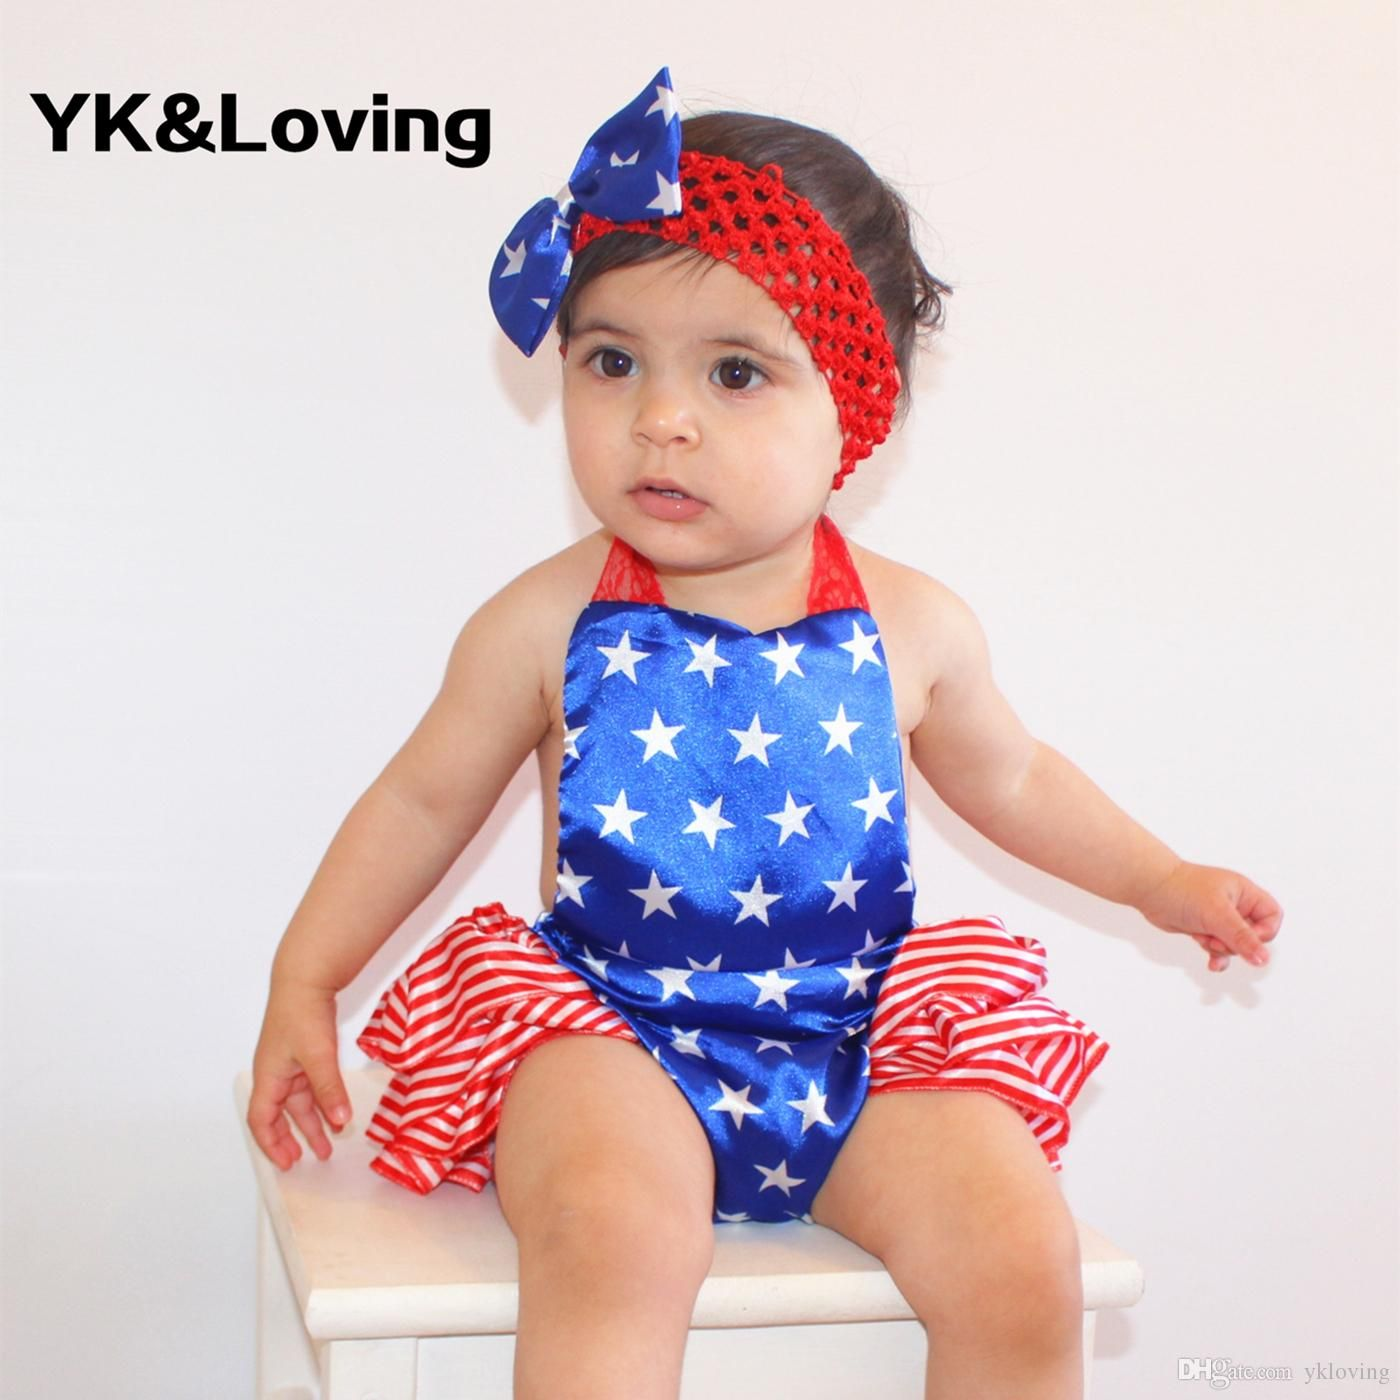 b0296b5ae 2017 Baby Romper Short Jumpsuts Red Ruffle Toddler Skirts Set 7.4 Us  National Day Tutus For Girls Sets New Arrival From Ykloving, $9.93 |  Dhgate.Com